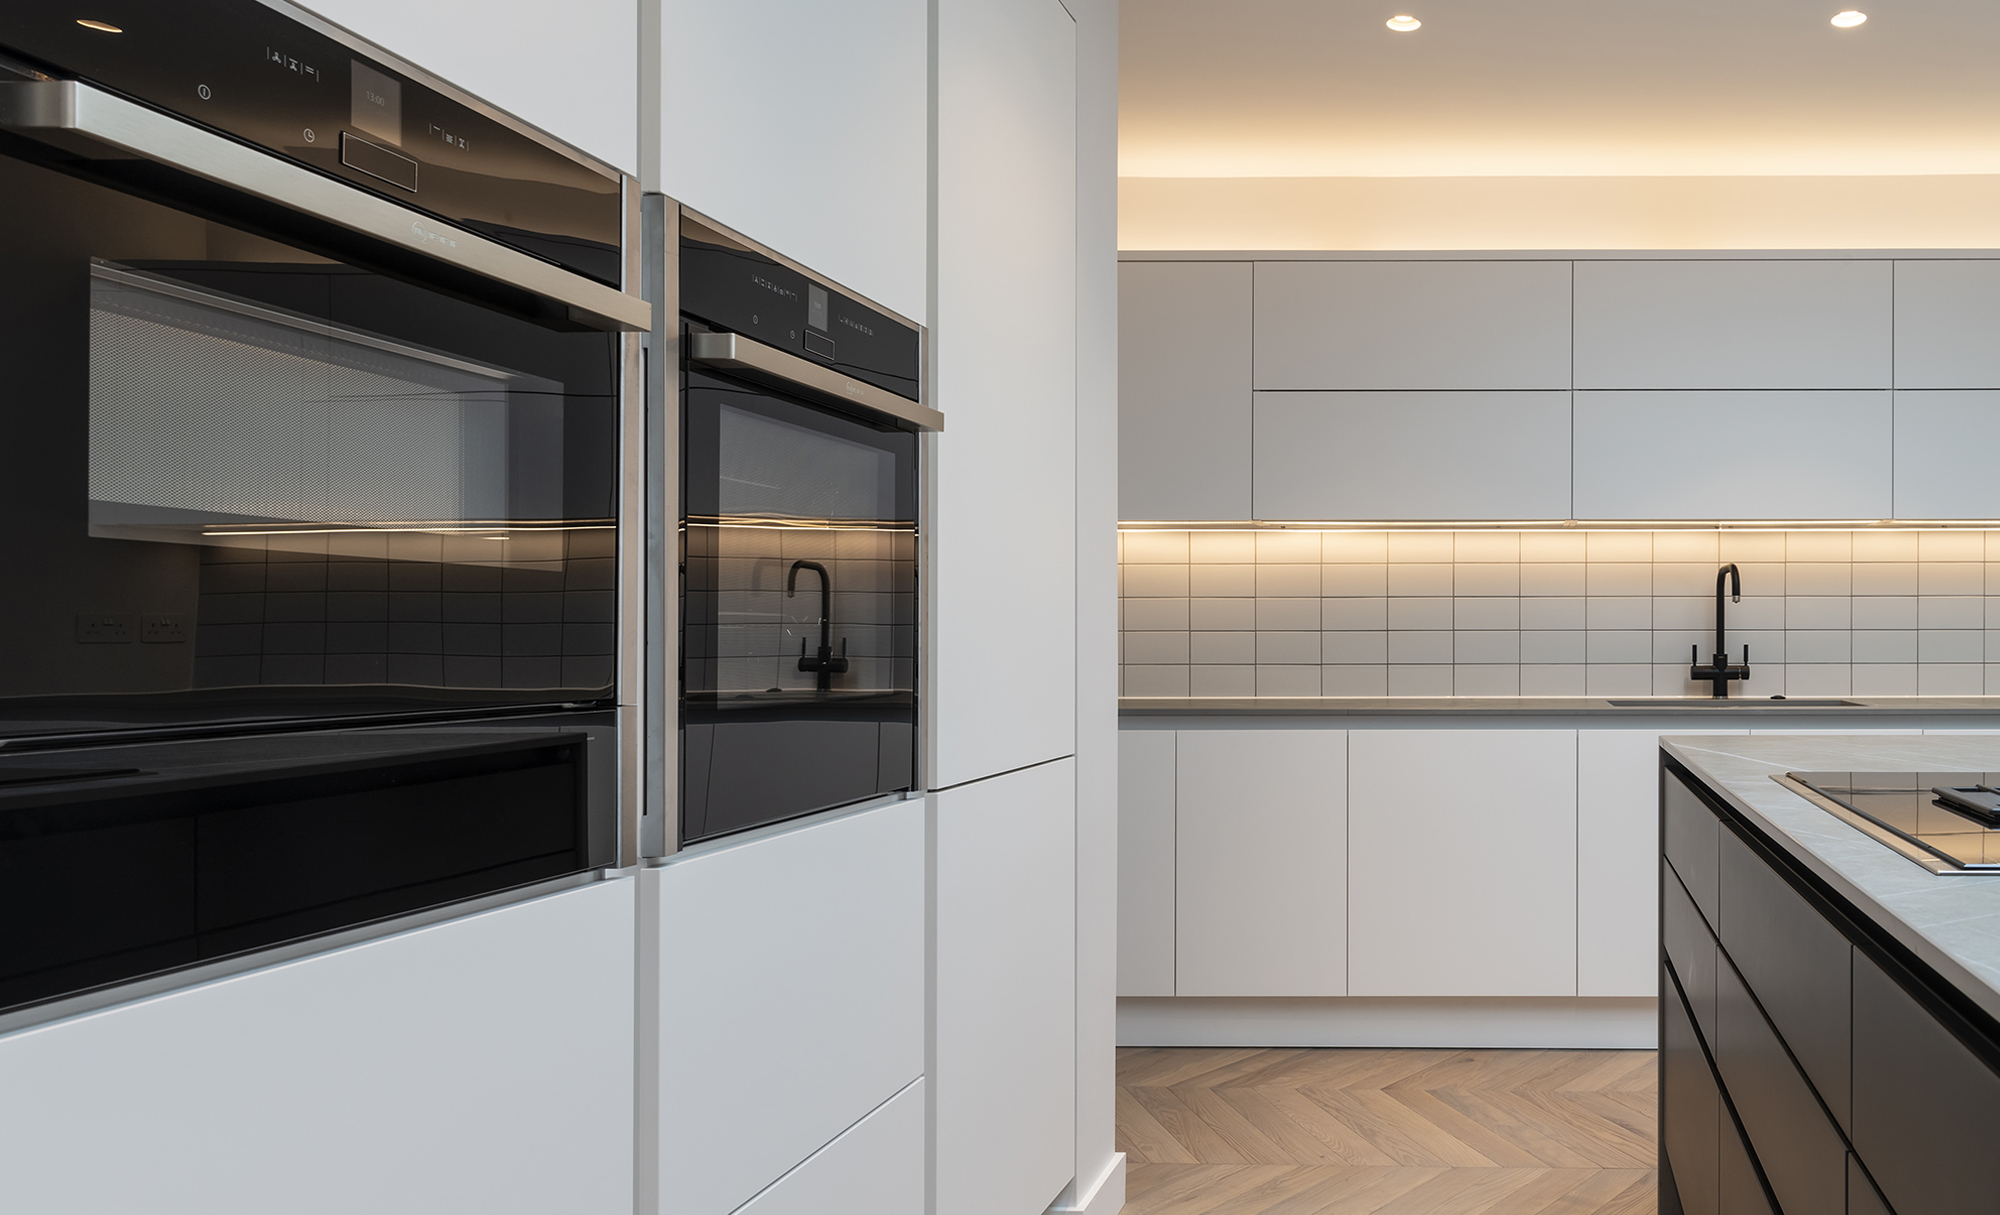 Portishead Zola Matte Almost Black & White Kitchen for a home in North Somerset 4